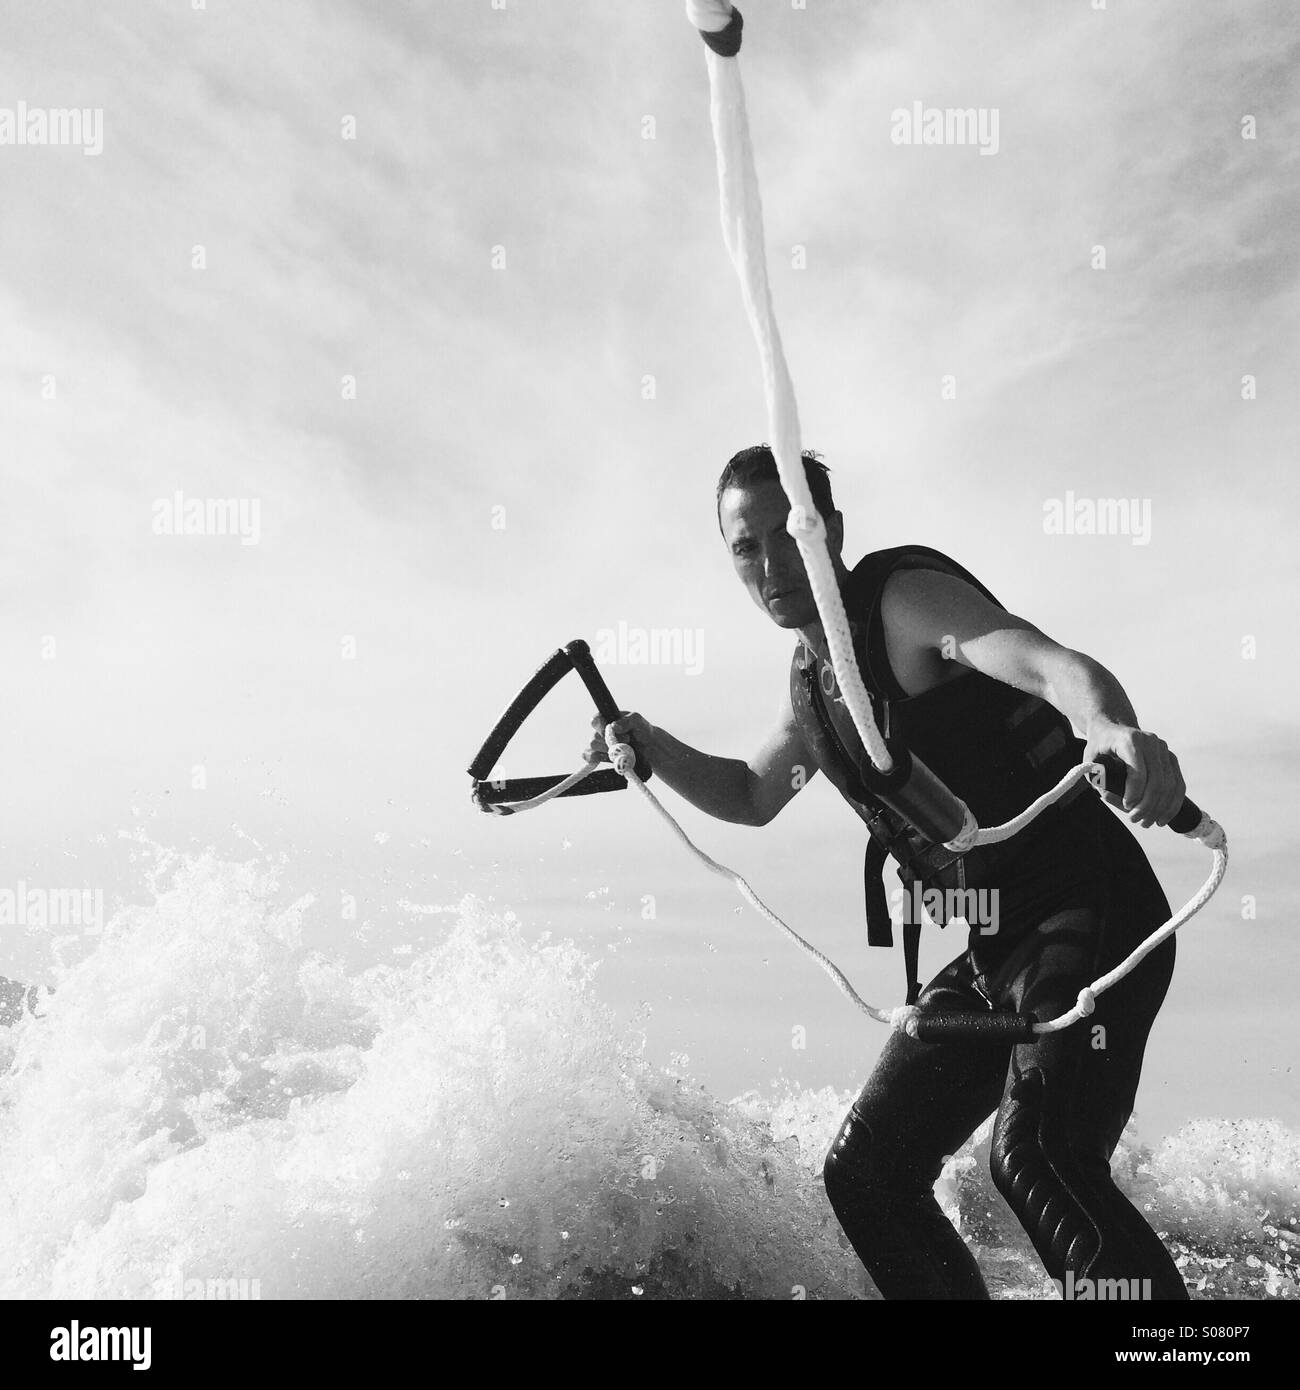 Surfing - Stock Image